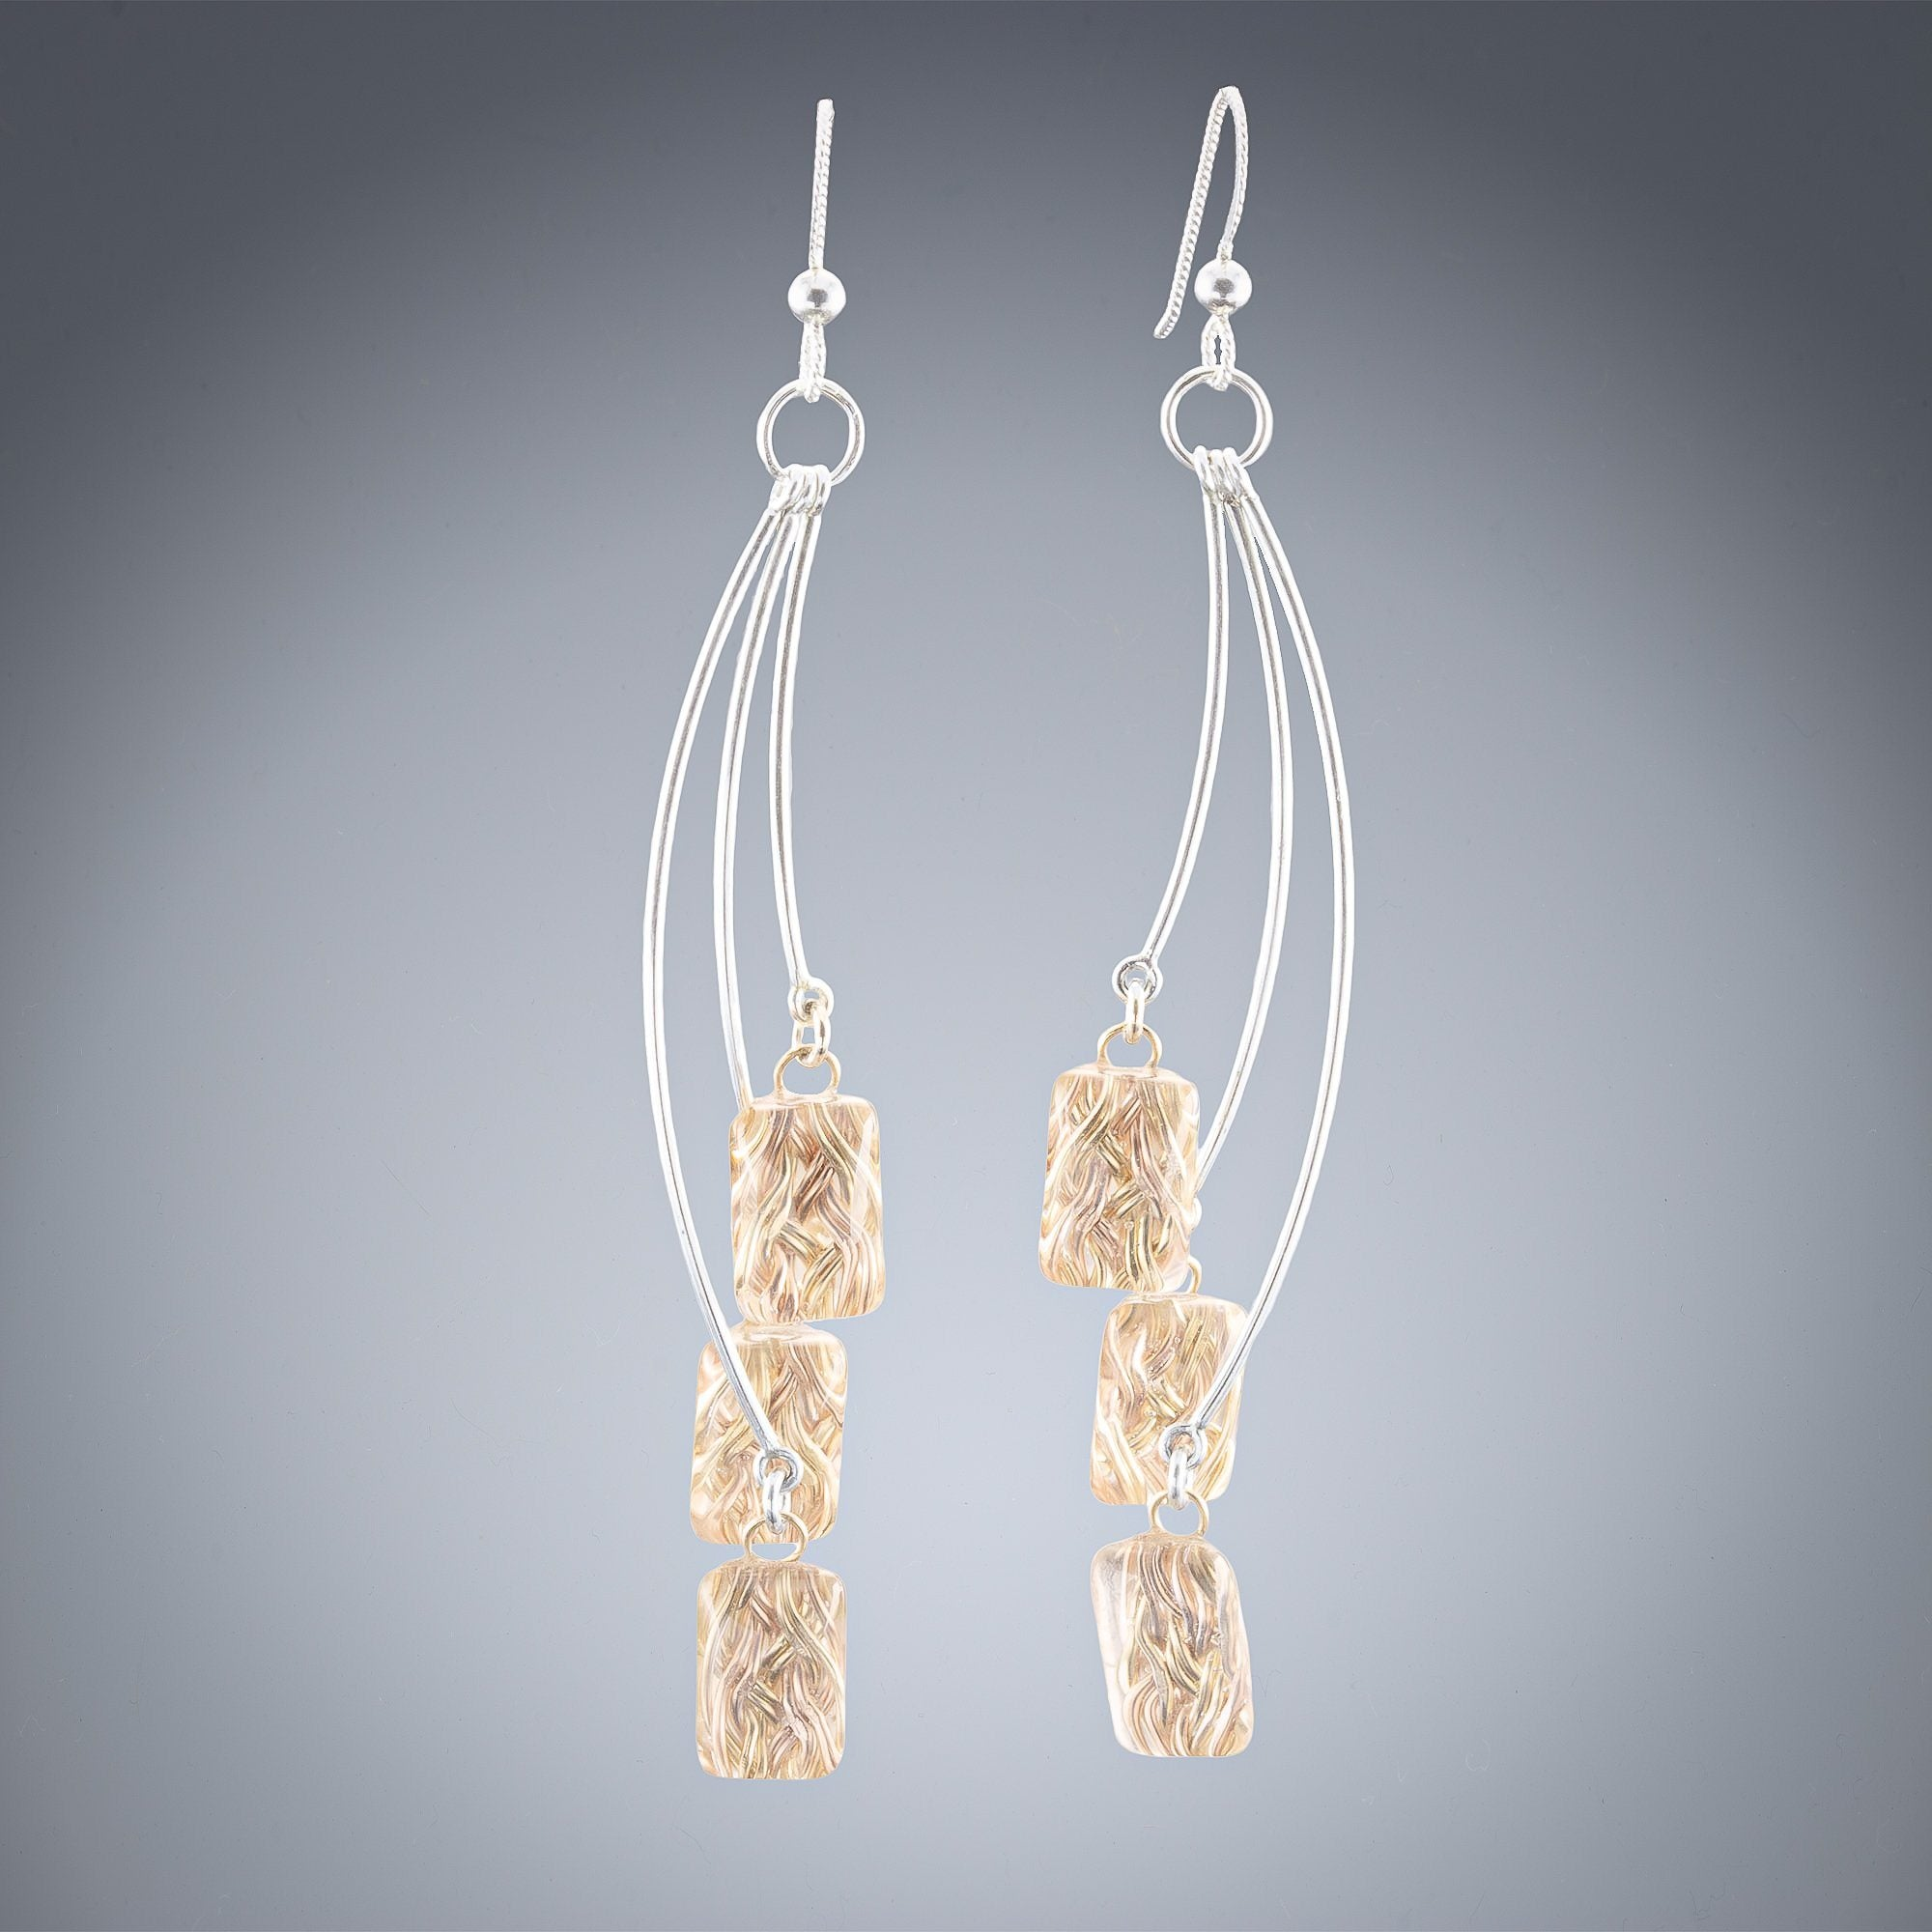 Woven Depths Earrings - Fireworks - Tahmi